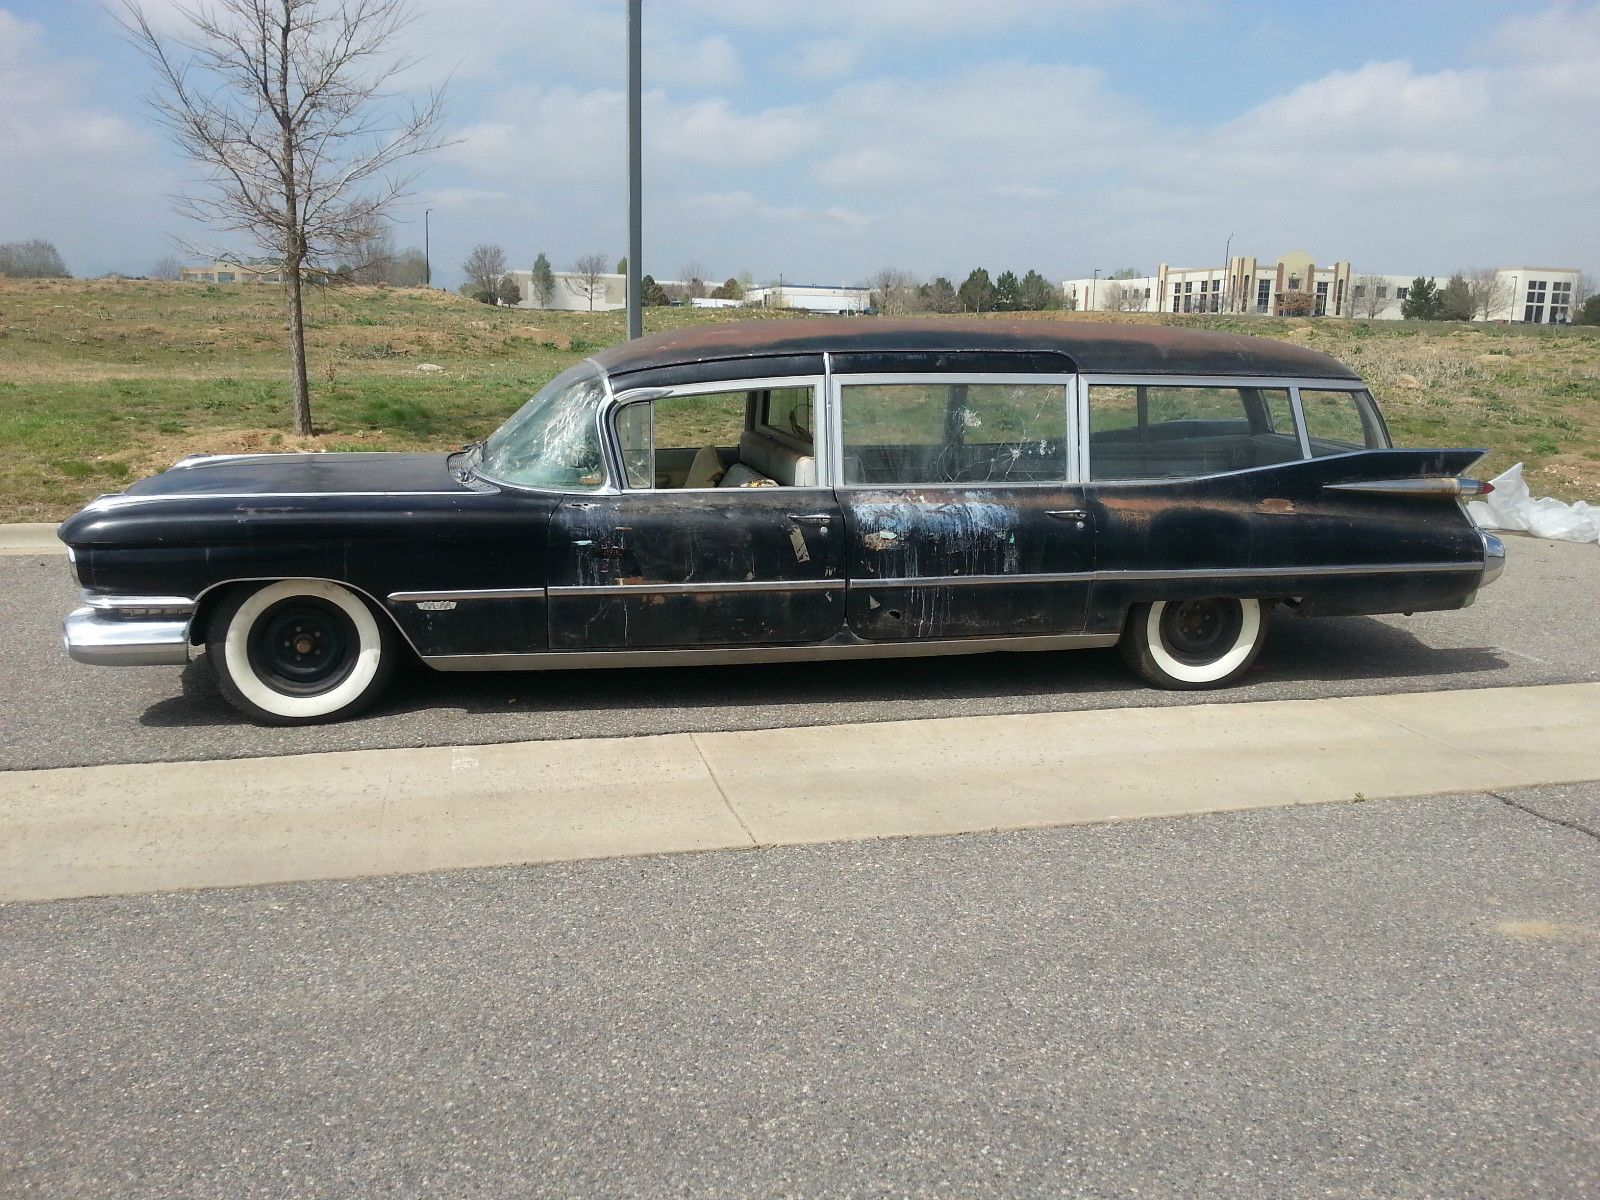 1959 cadillac miller meteor hearses for sale pinterest 1959 cadillac miller meteor bikes for sale station wagon custom bikes cars and izmirmasajfo